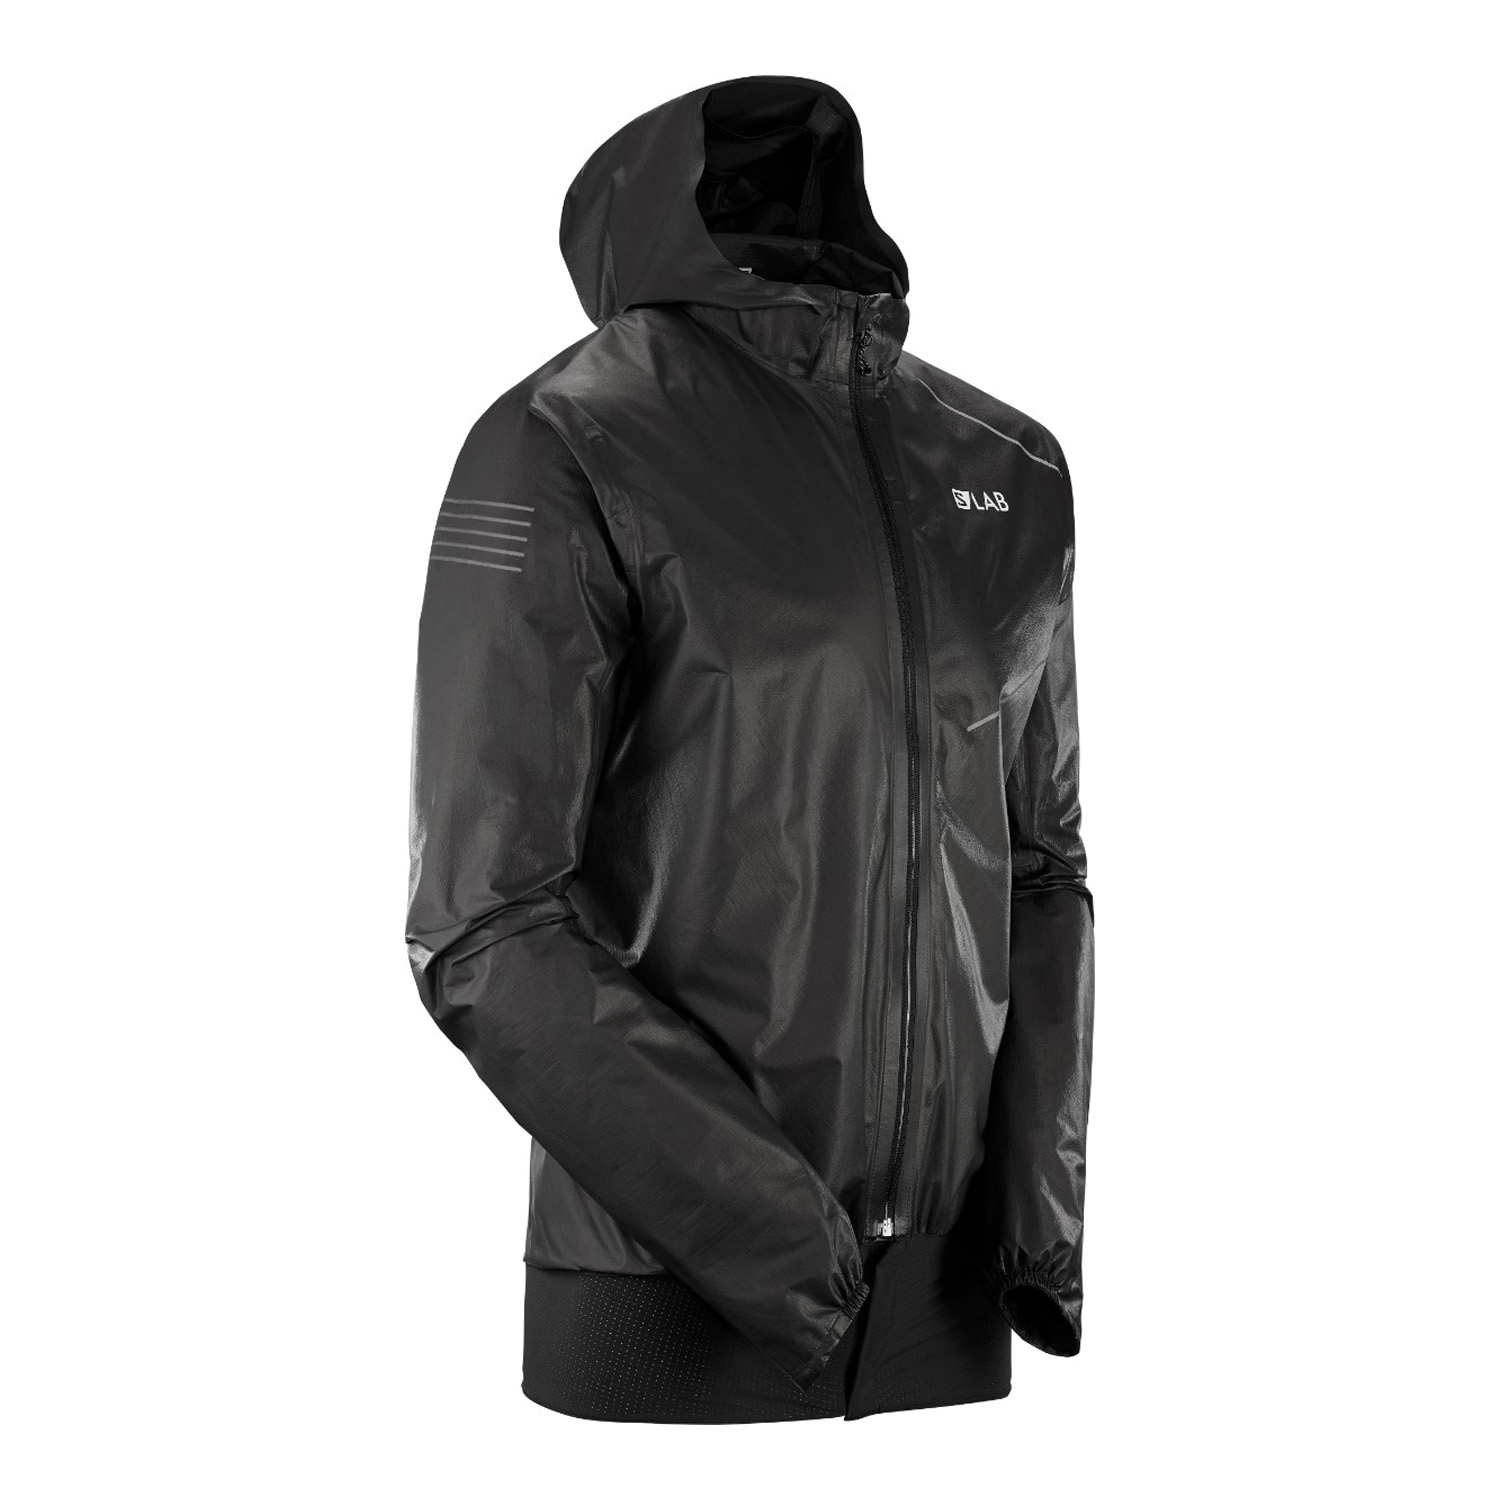 S/LAB MOTIONFIT 360 JKT M